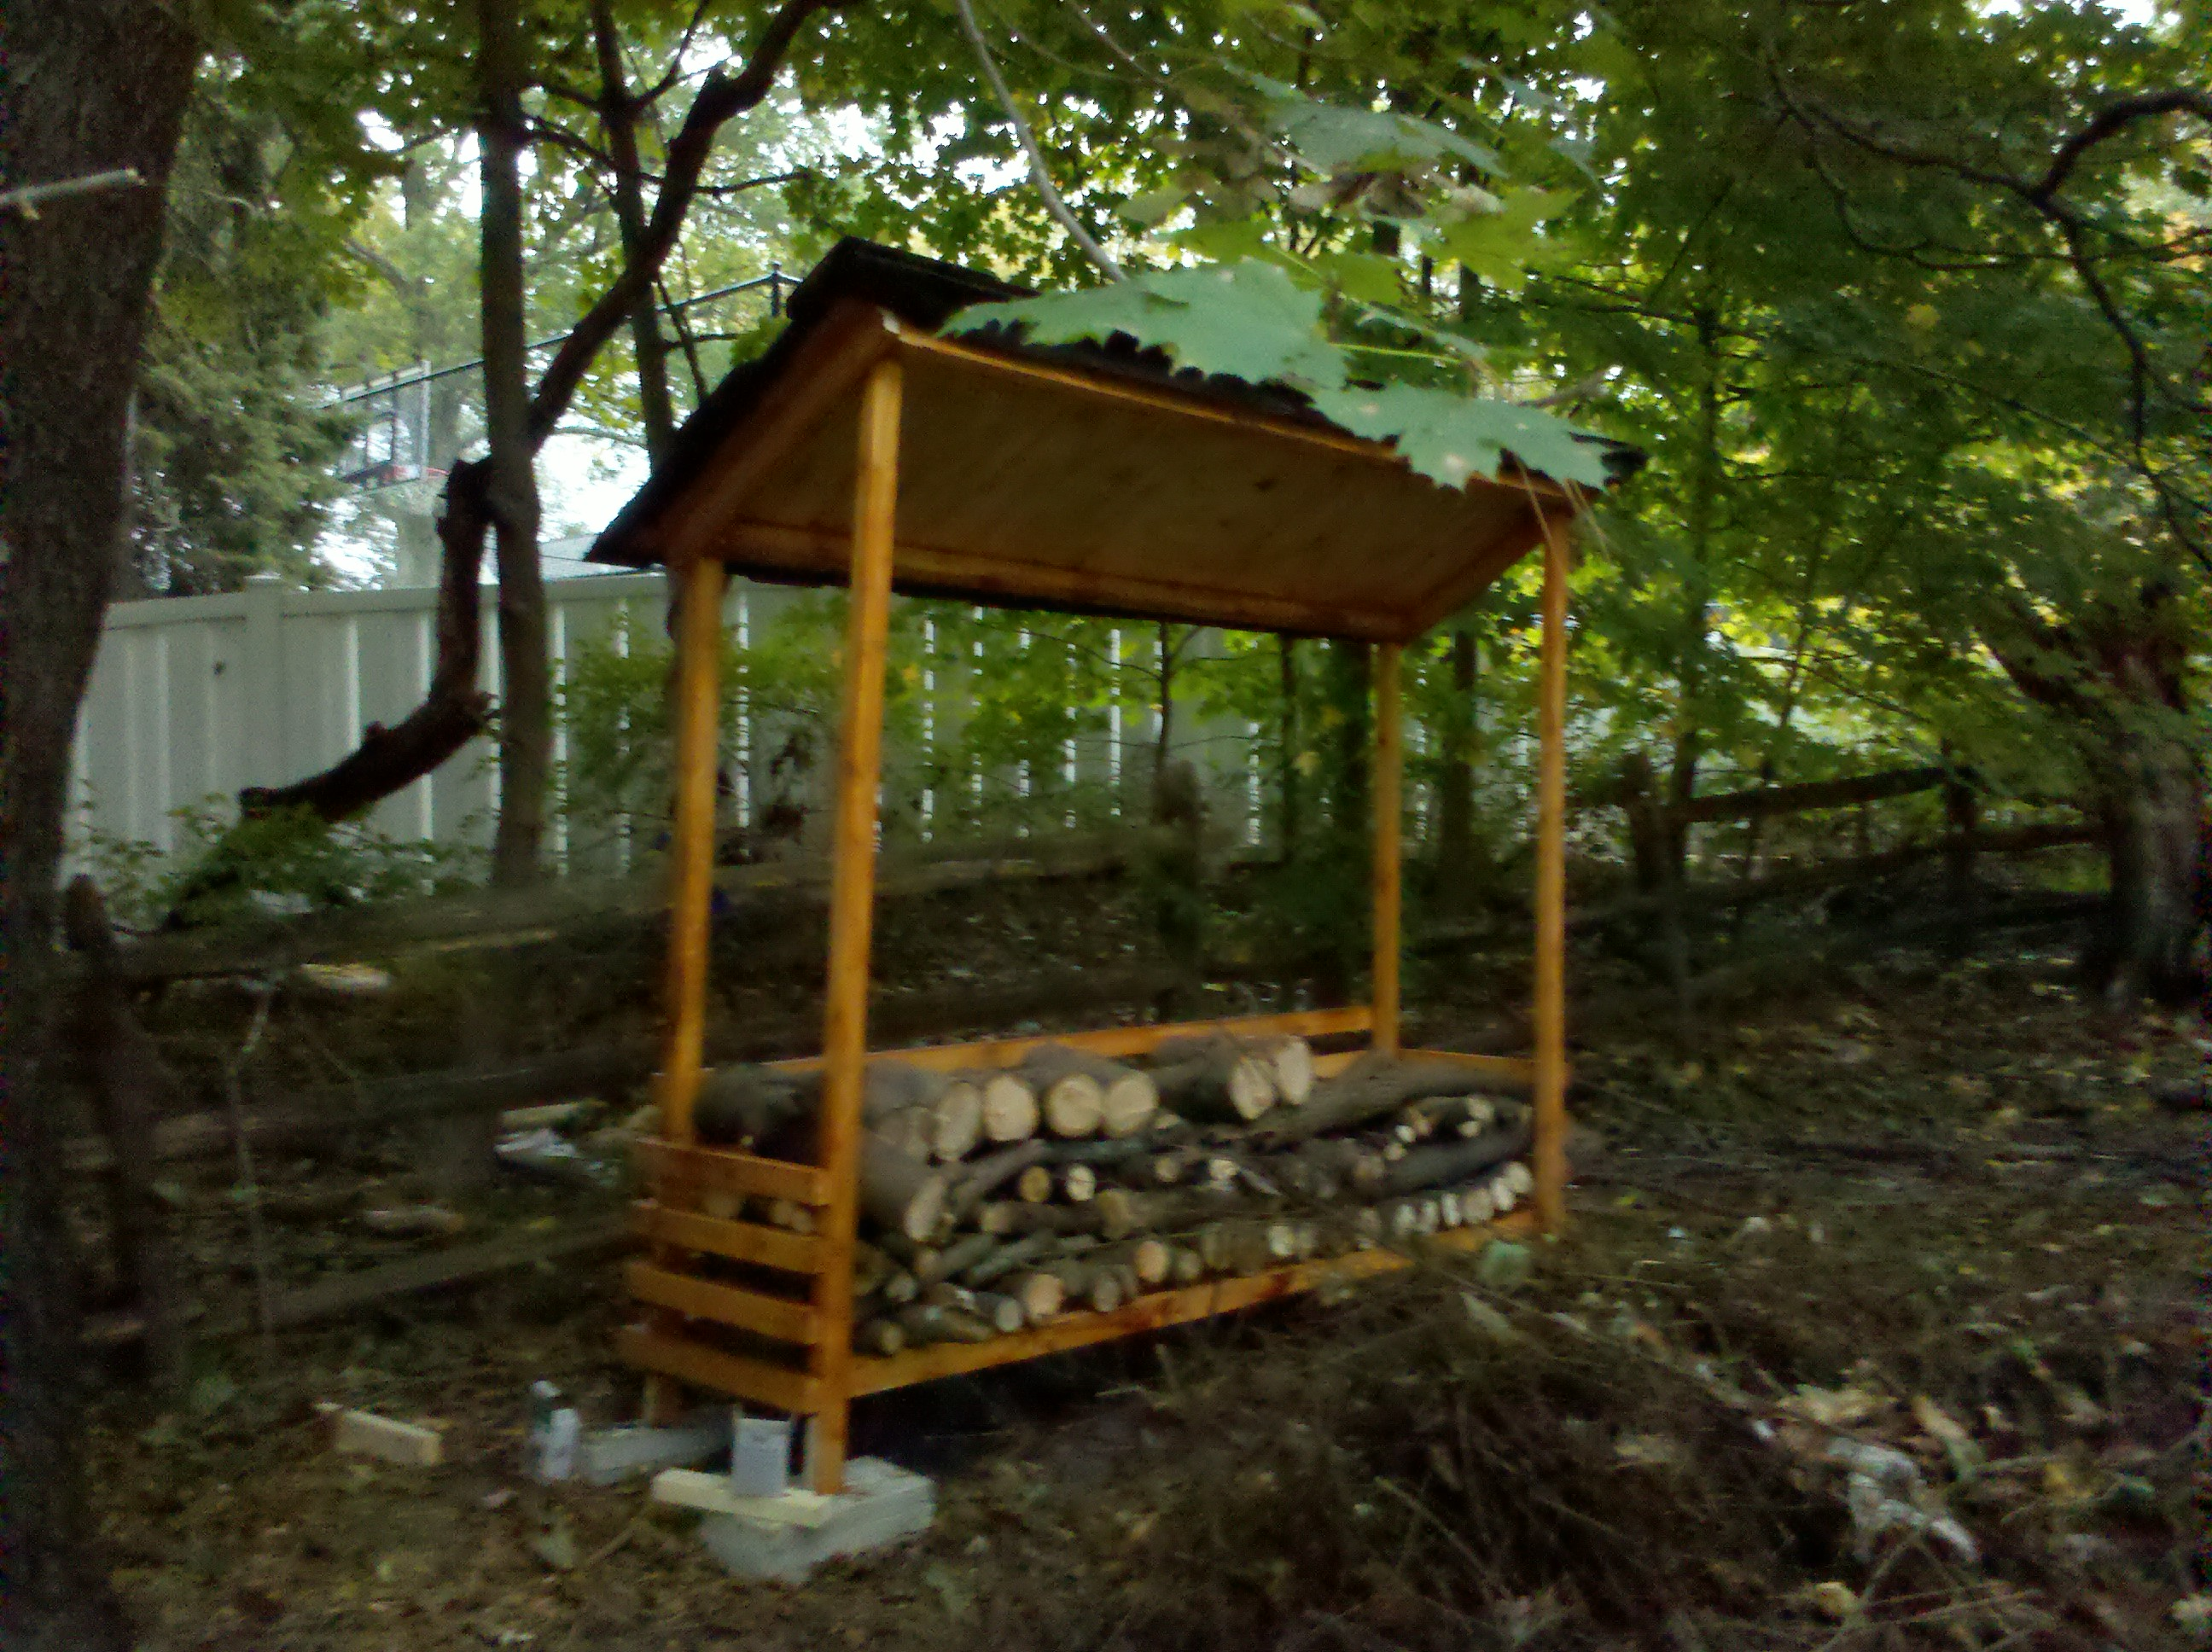 10 Wood Shed Plans to Keep Firewood Dry | The Self-Sufficient Living